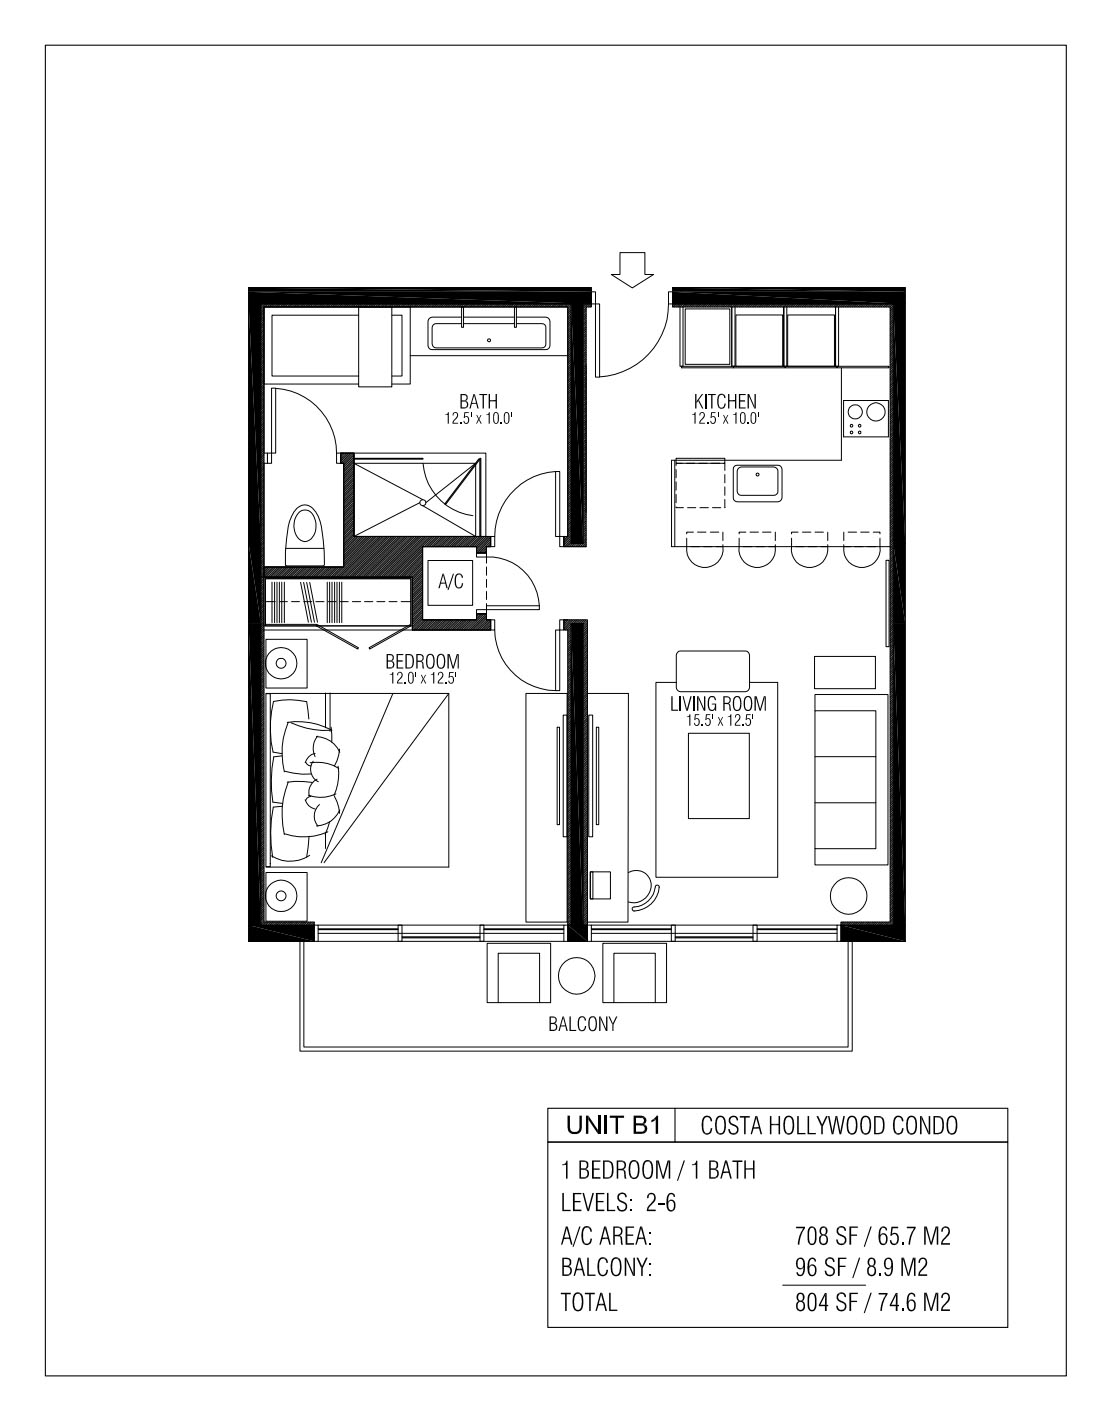 Melia Costa Hollywood - Floorplan 6